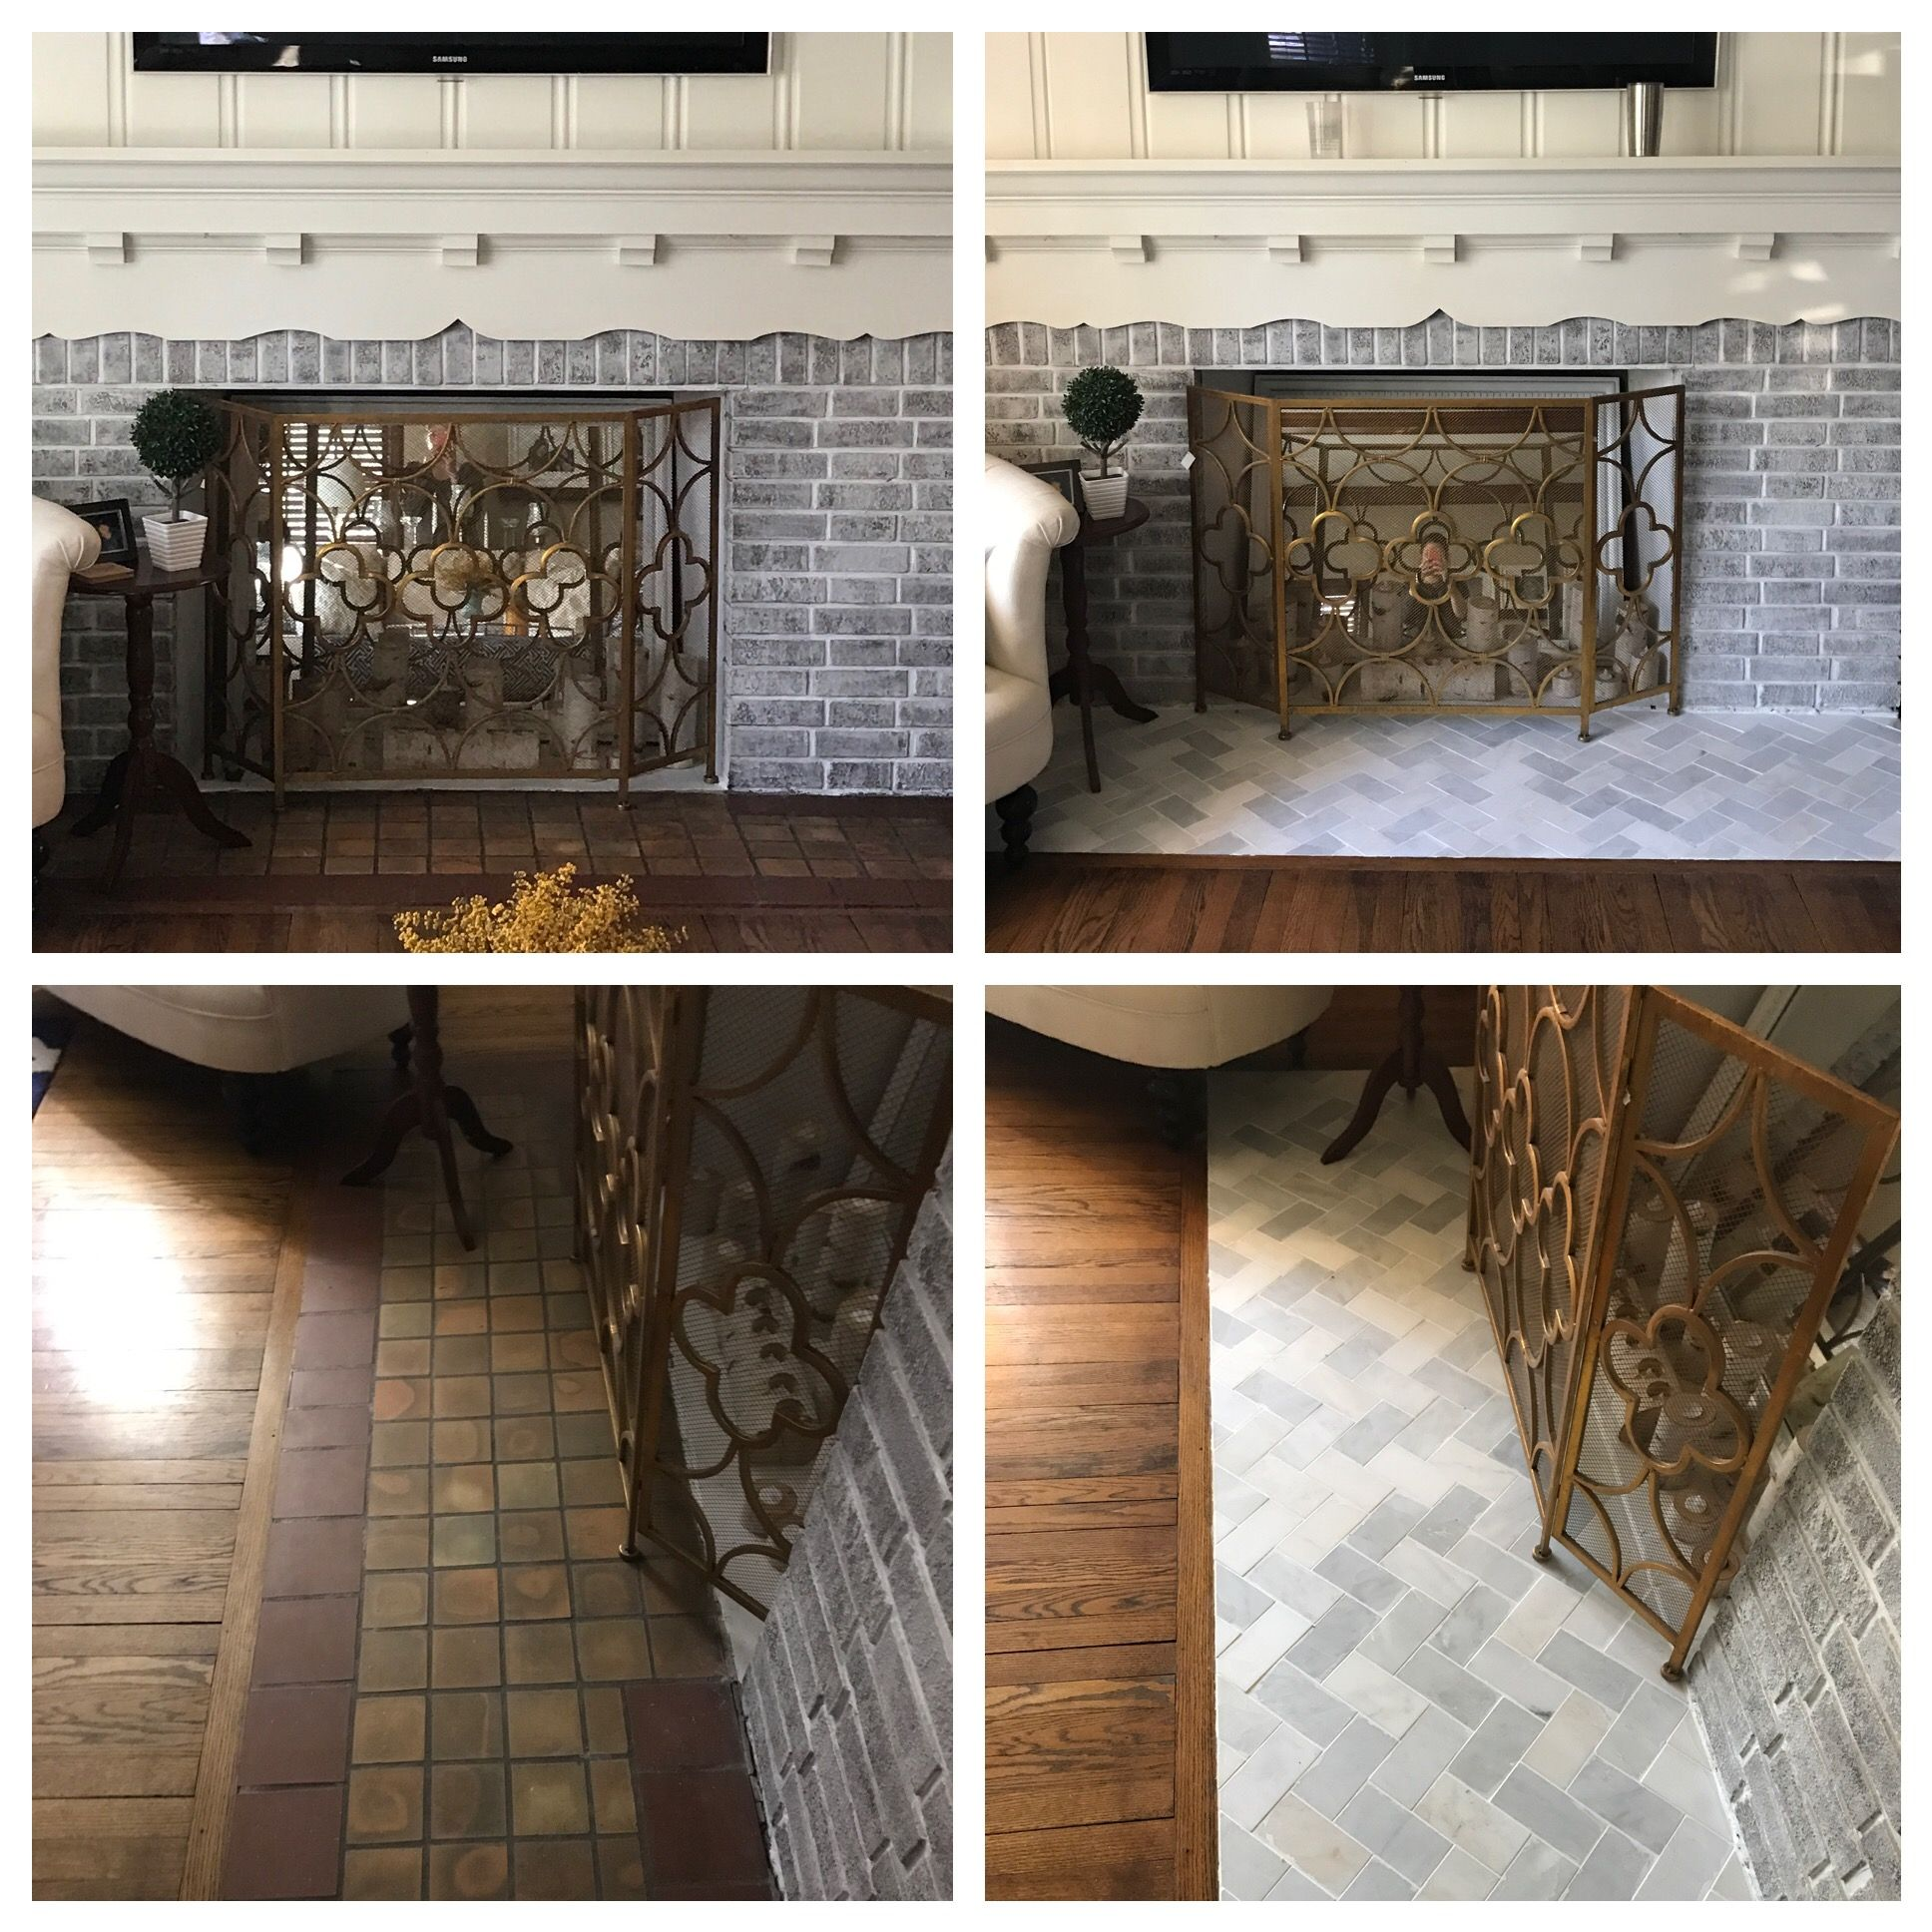 Fireplace floor tile before and after White Grecian tile from Home